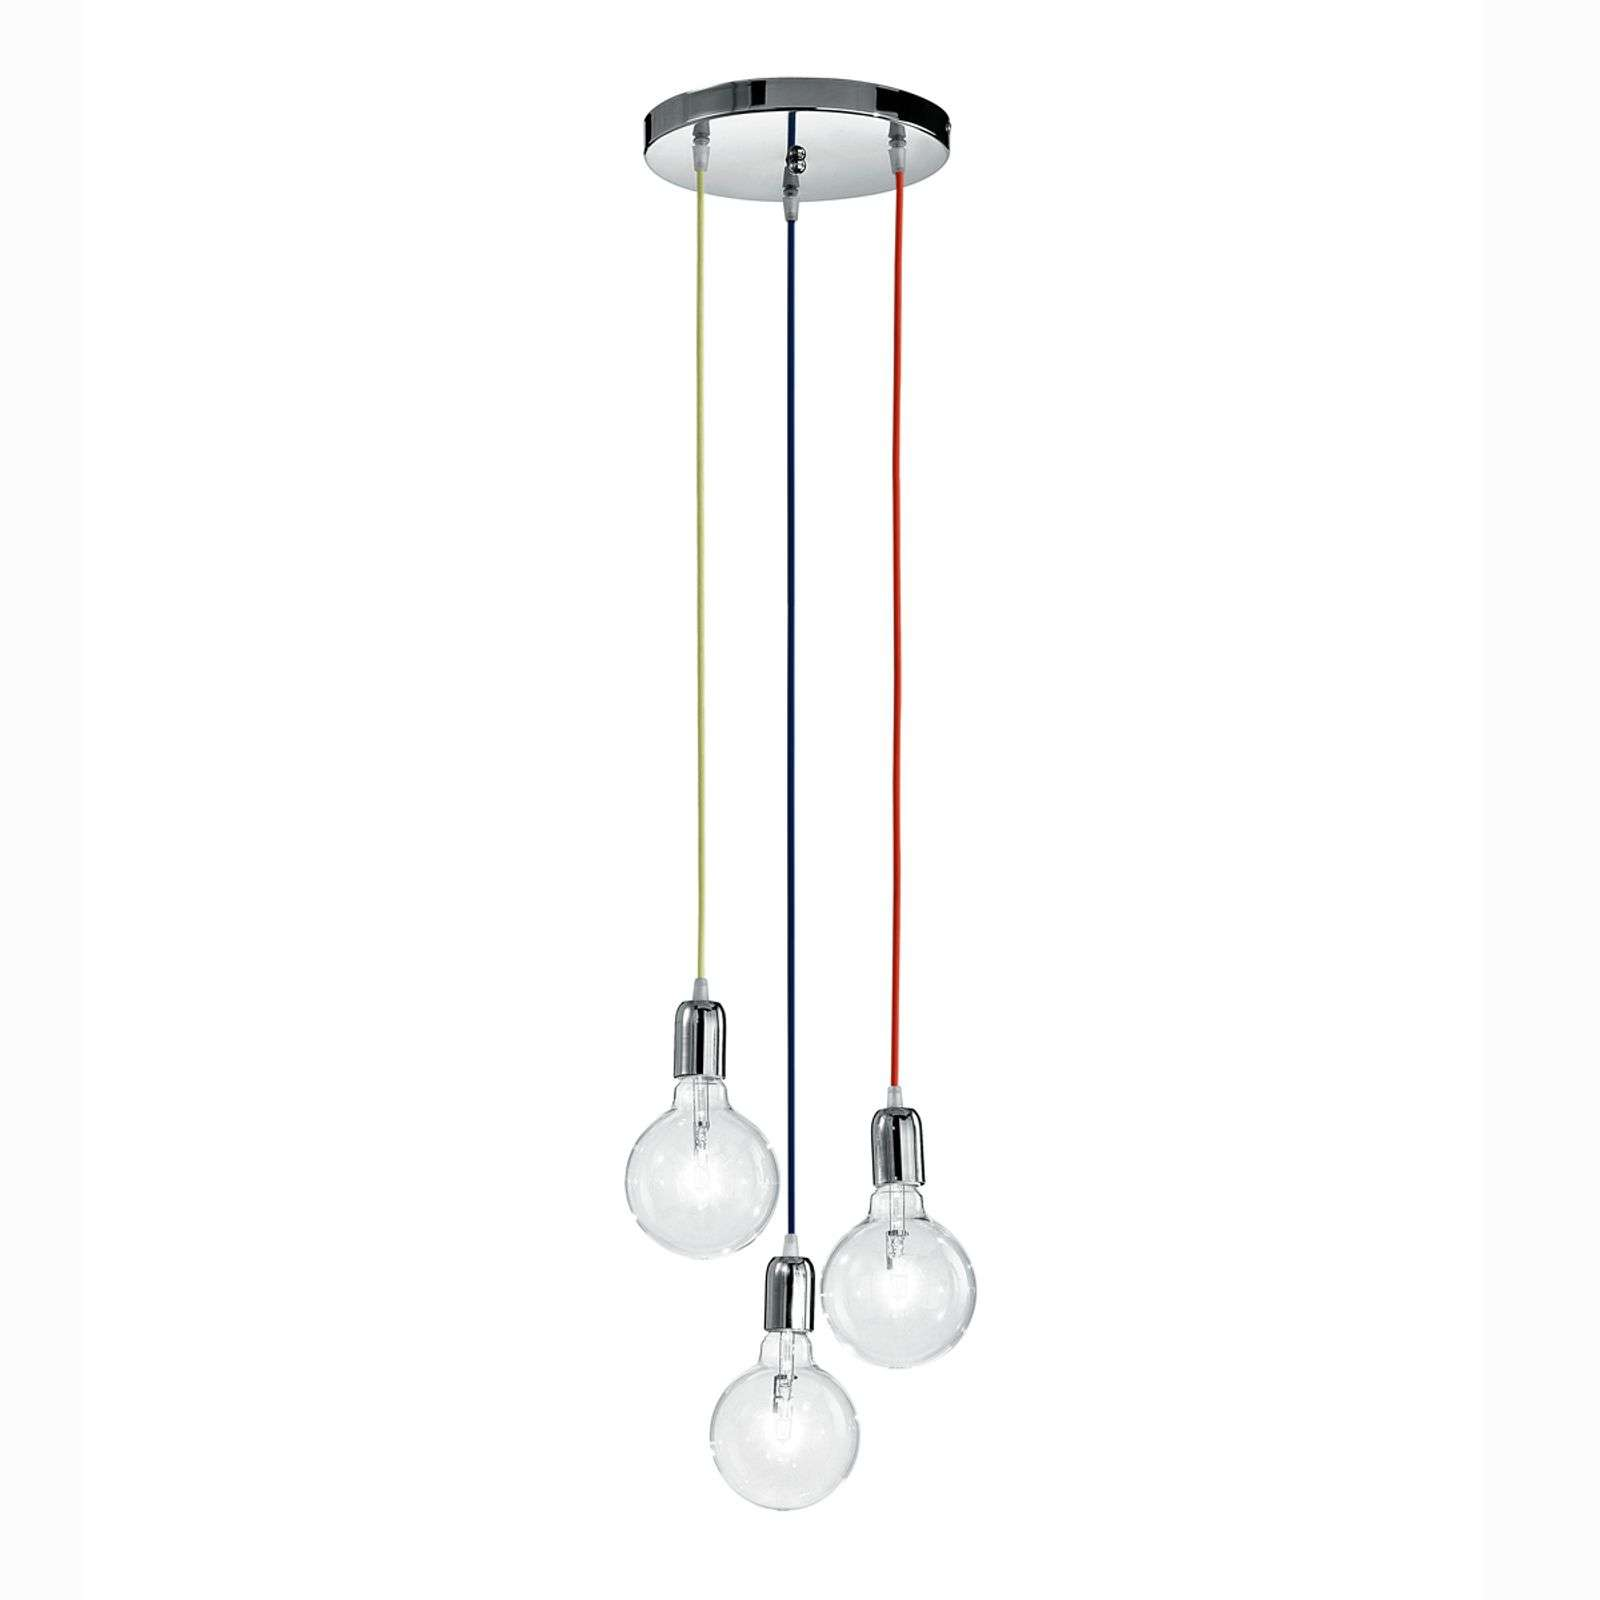 Suspension top-moderne Cono